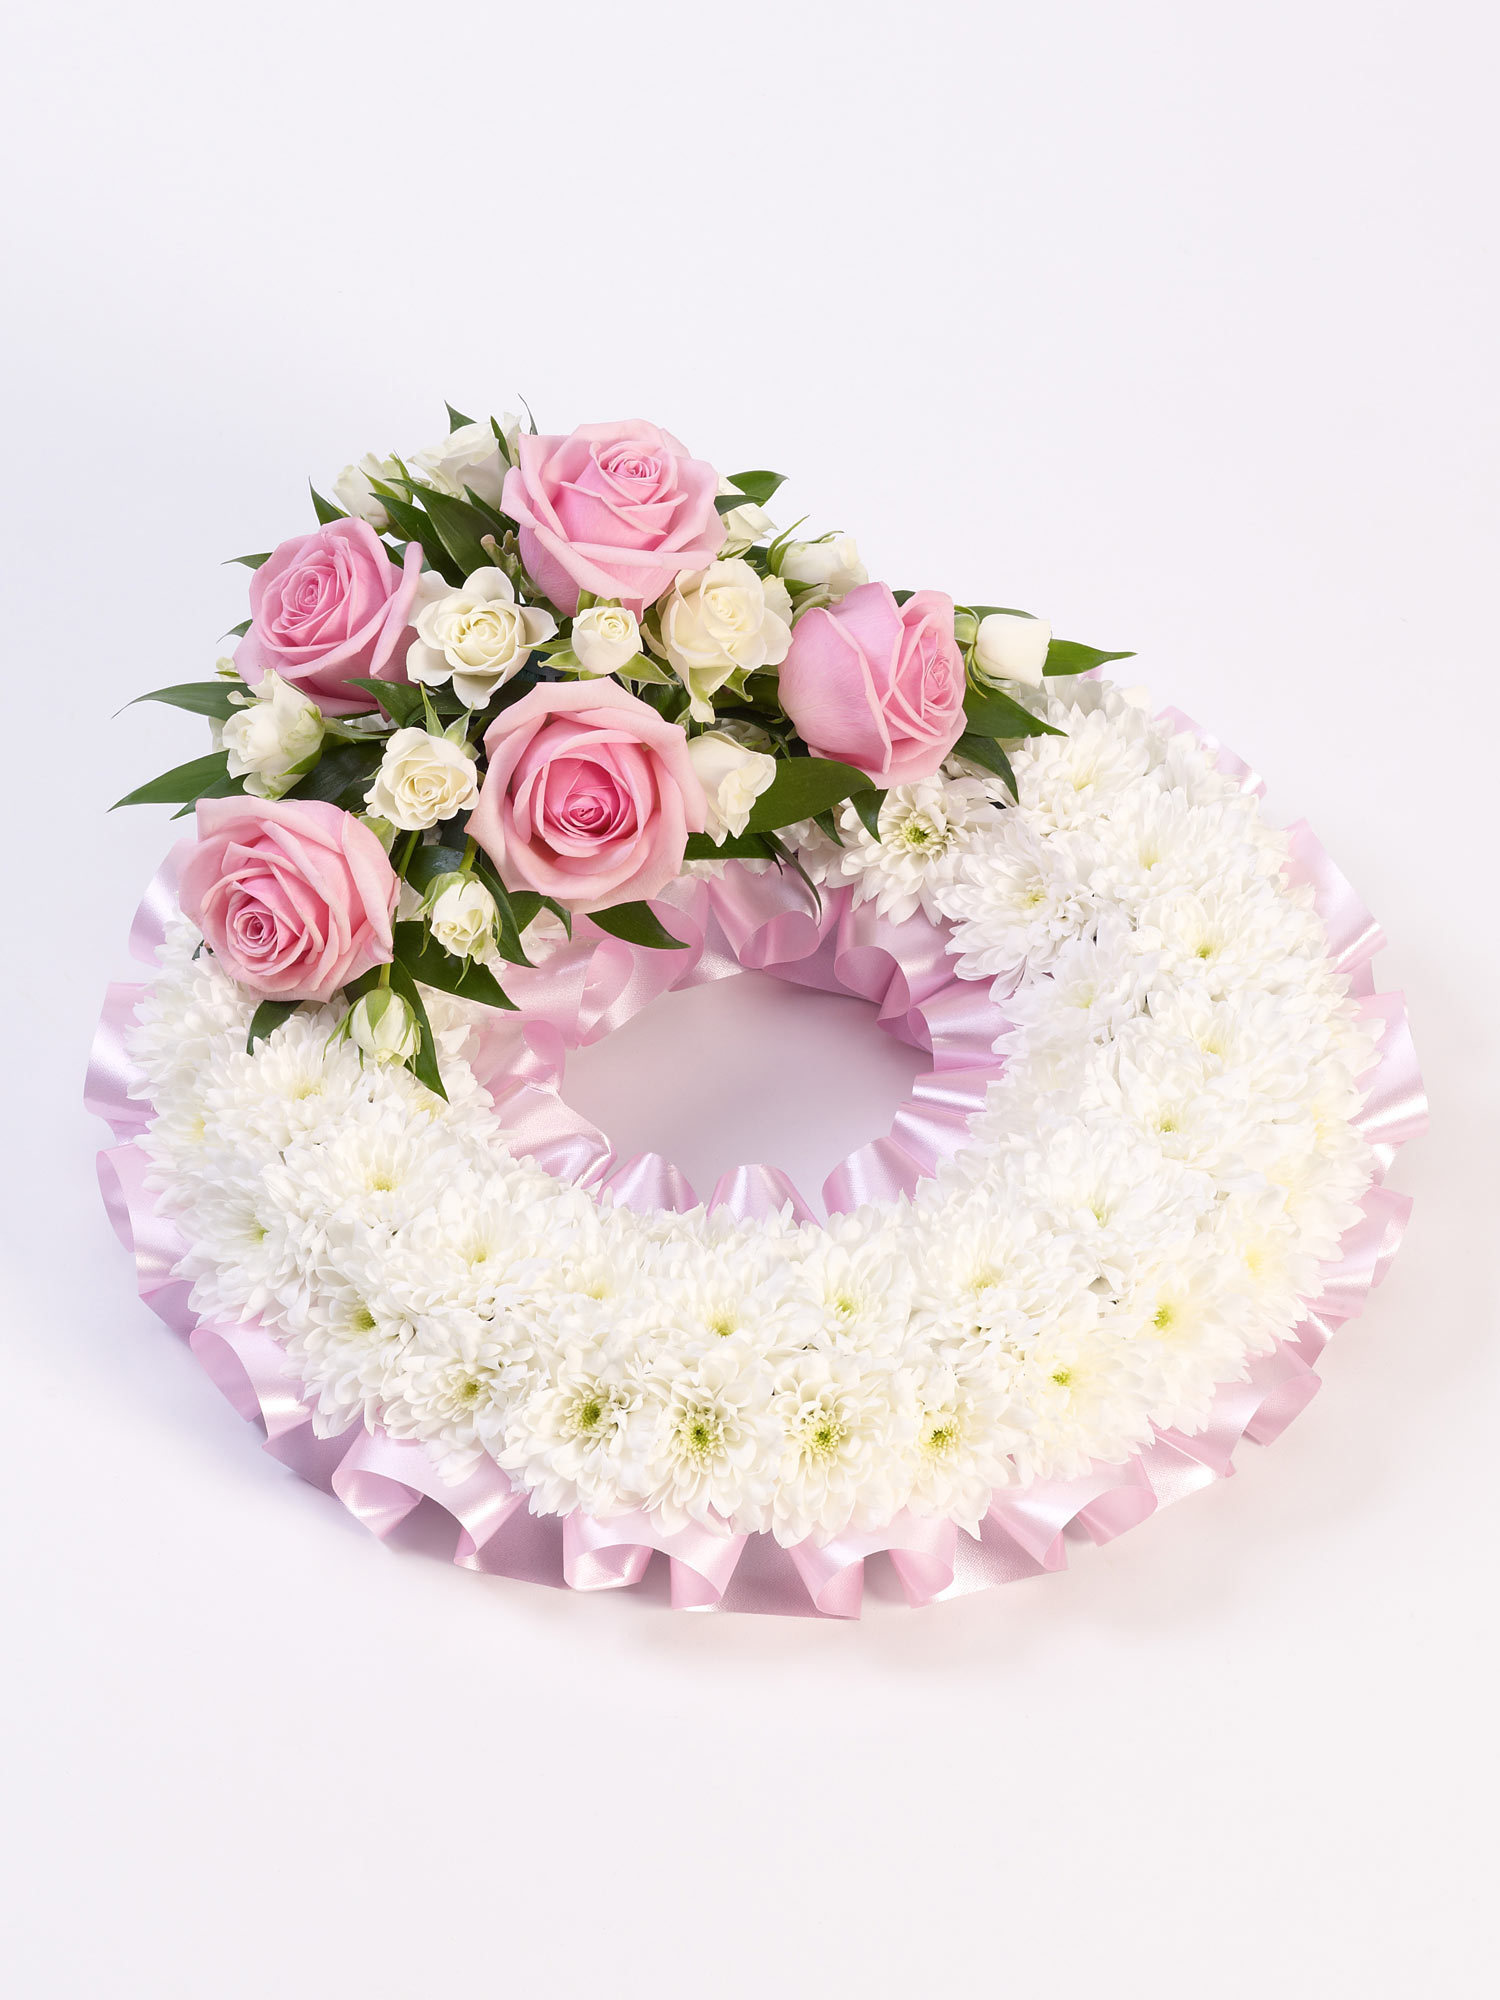 A floral wreath used for tributes